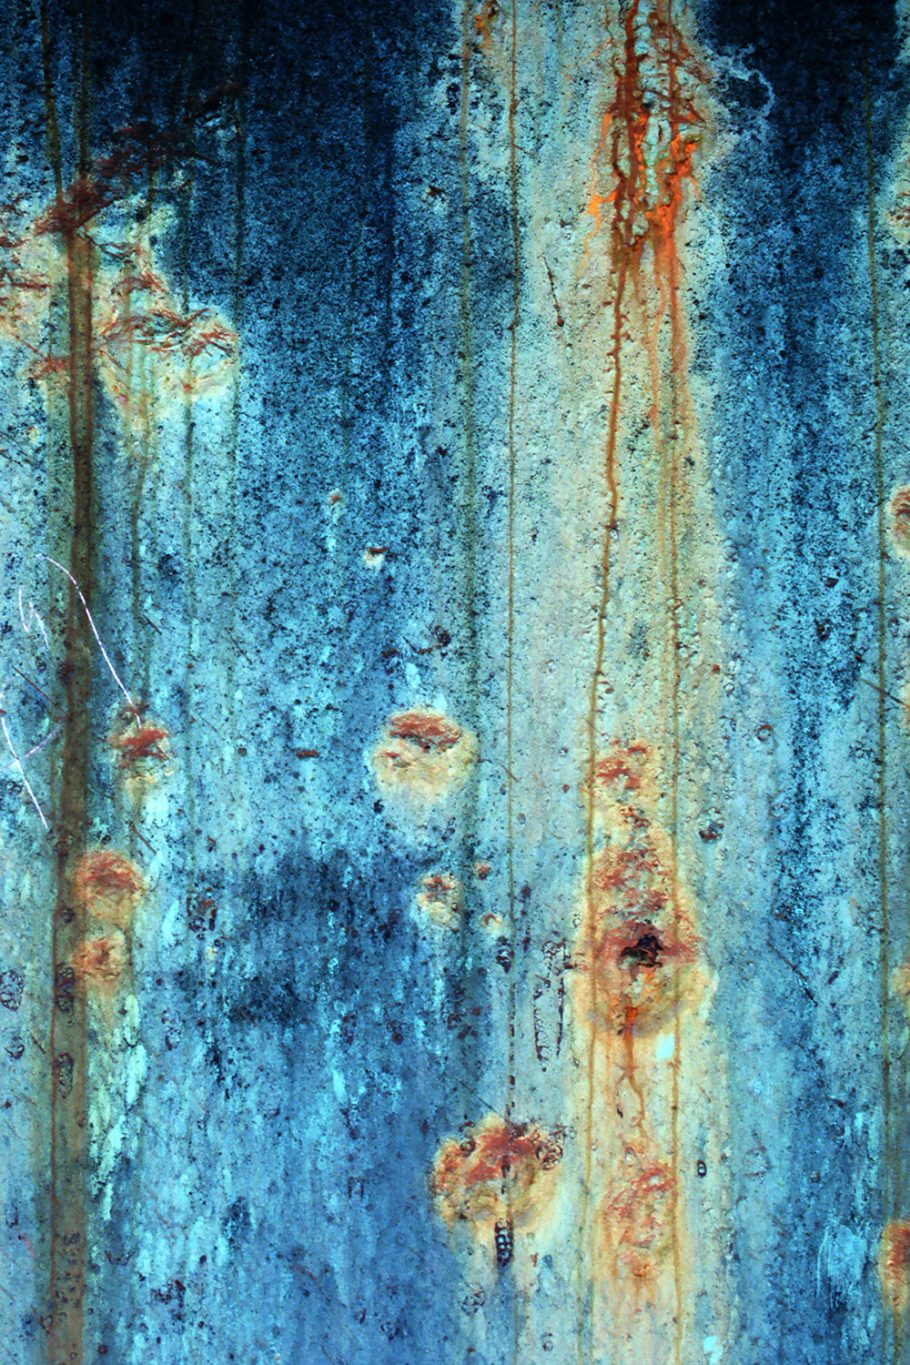 Blue and Orange Rust Printed Vinyl Backdrop